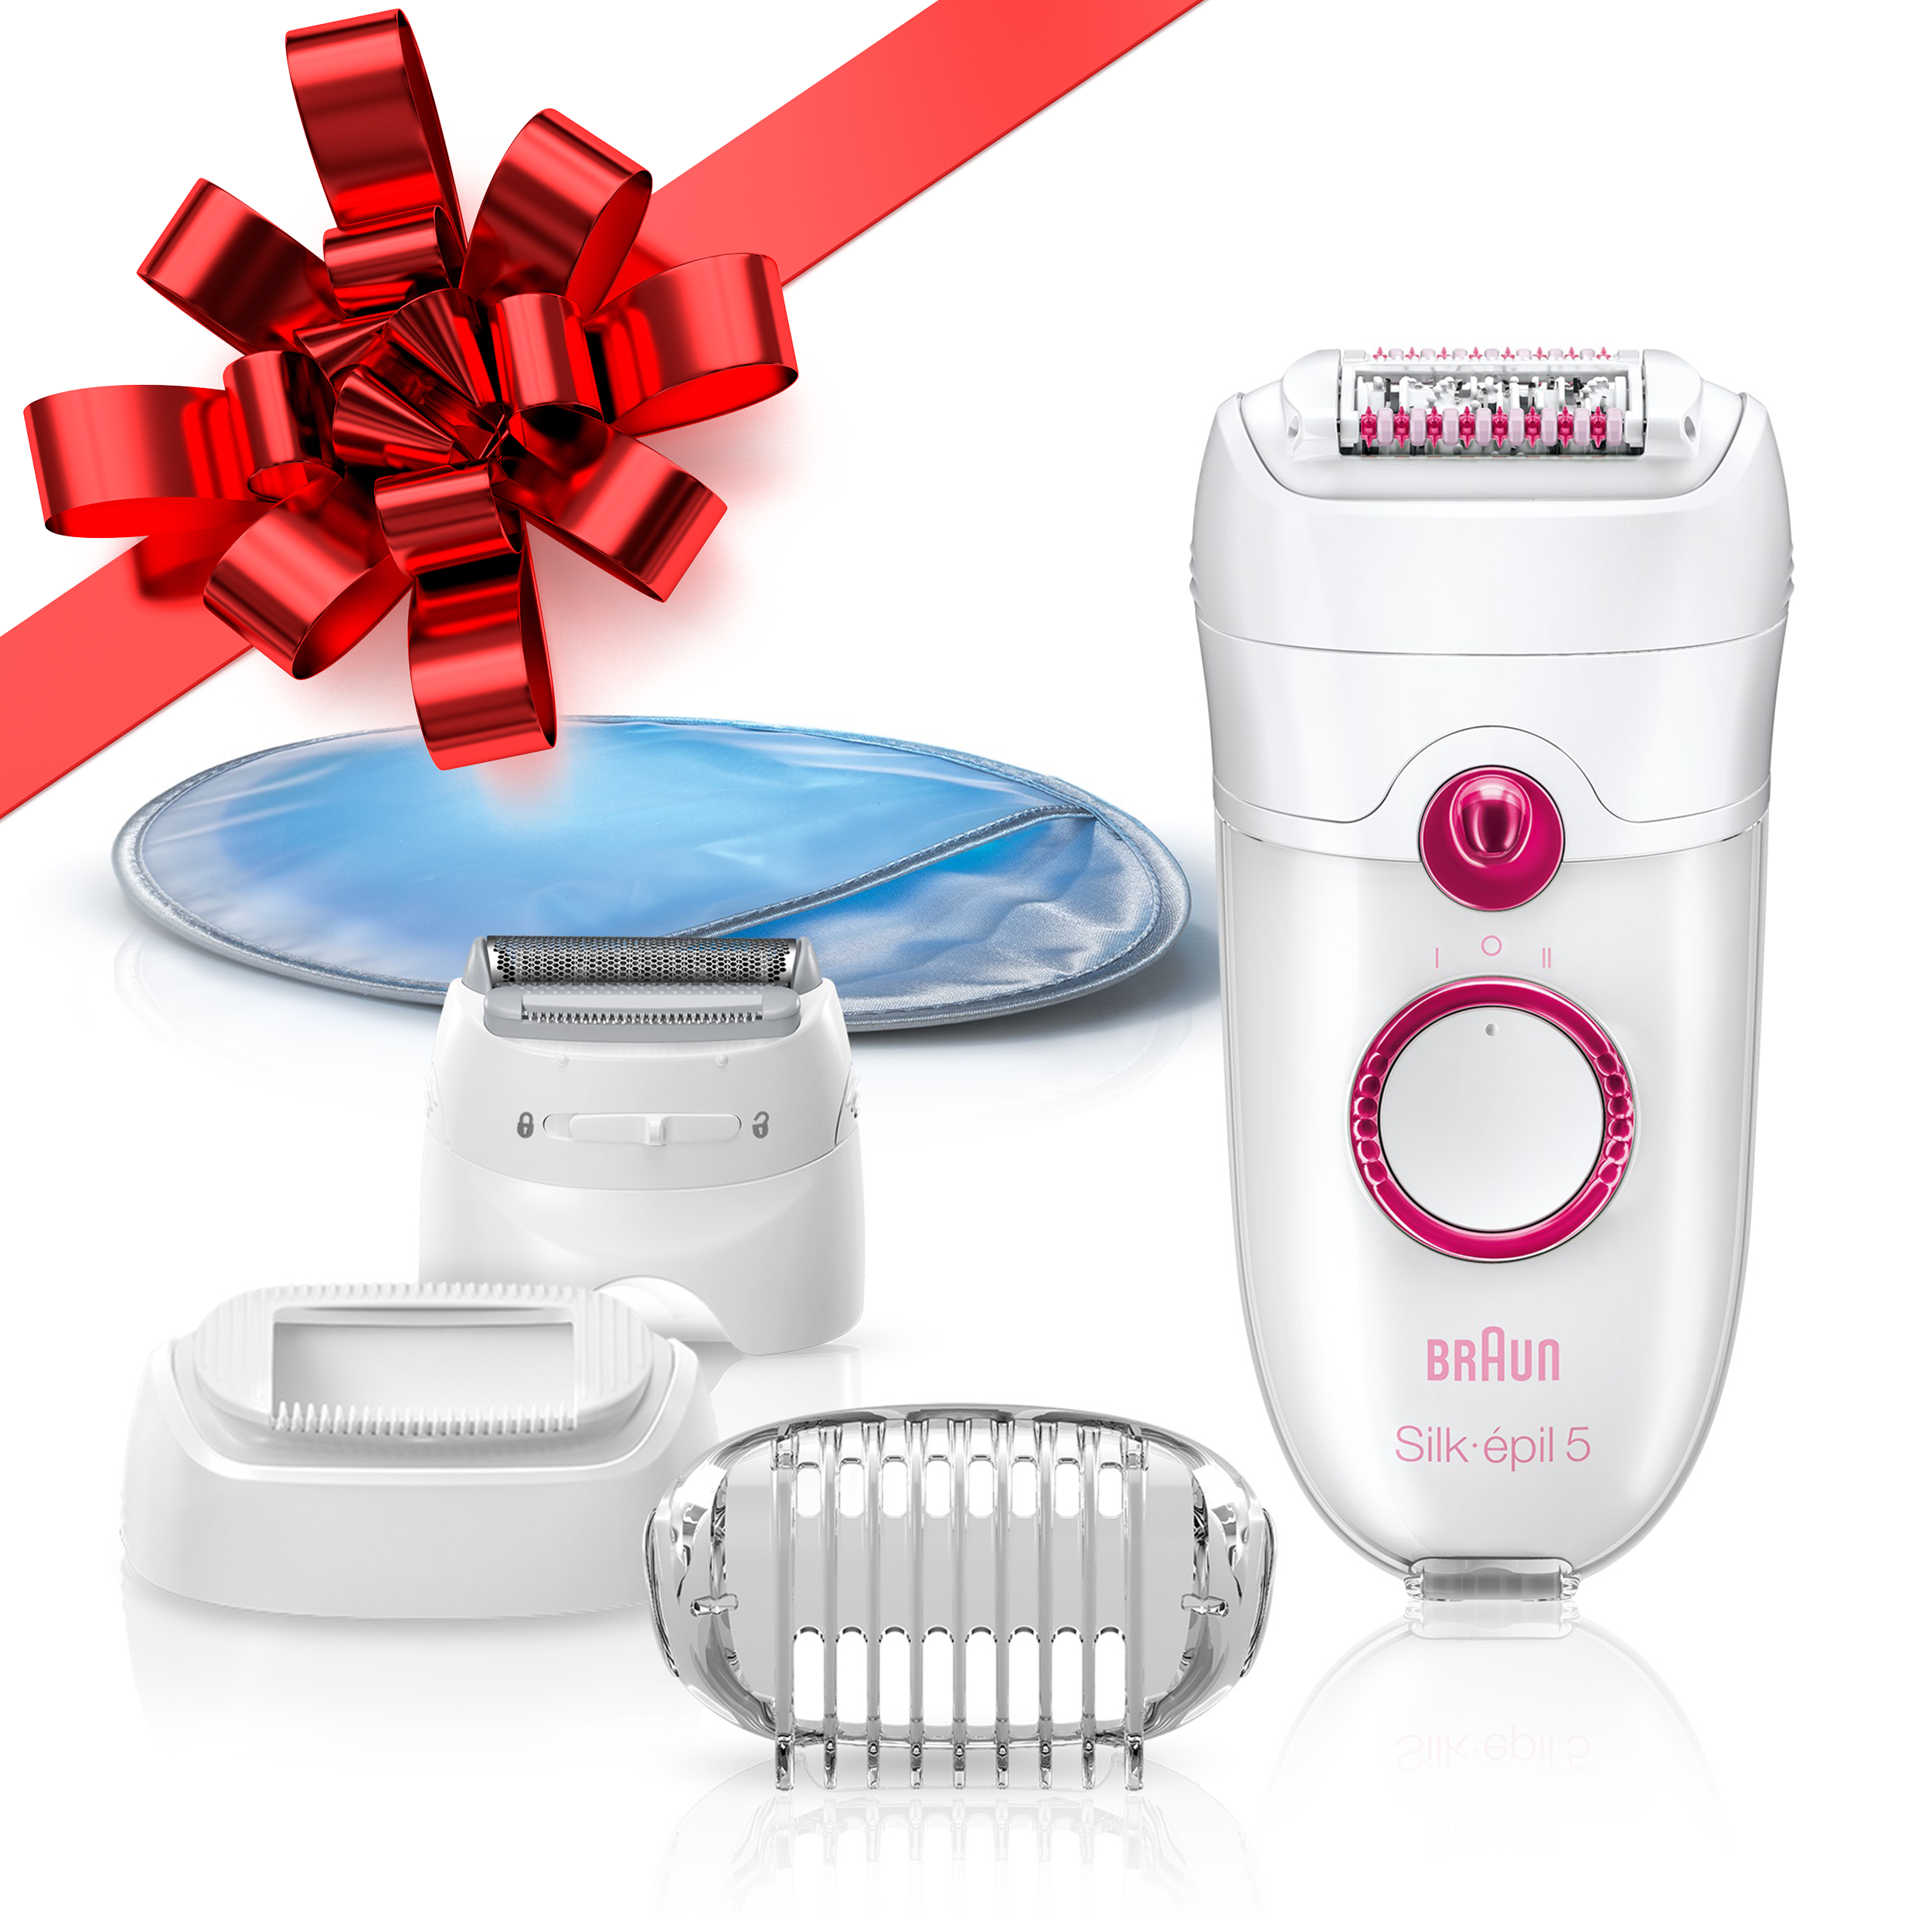 Braun Silk-epil 5 Power 5280 Epilator ($17 in Rebates Available)